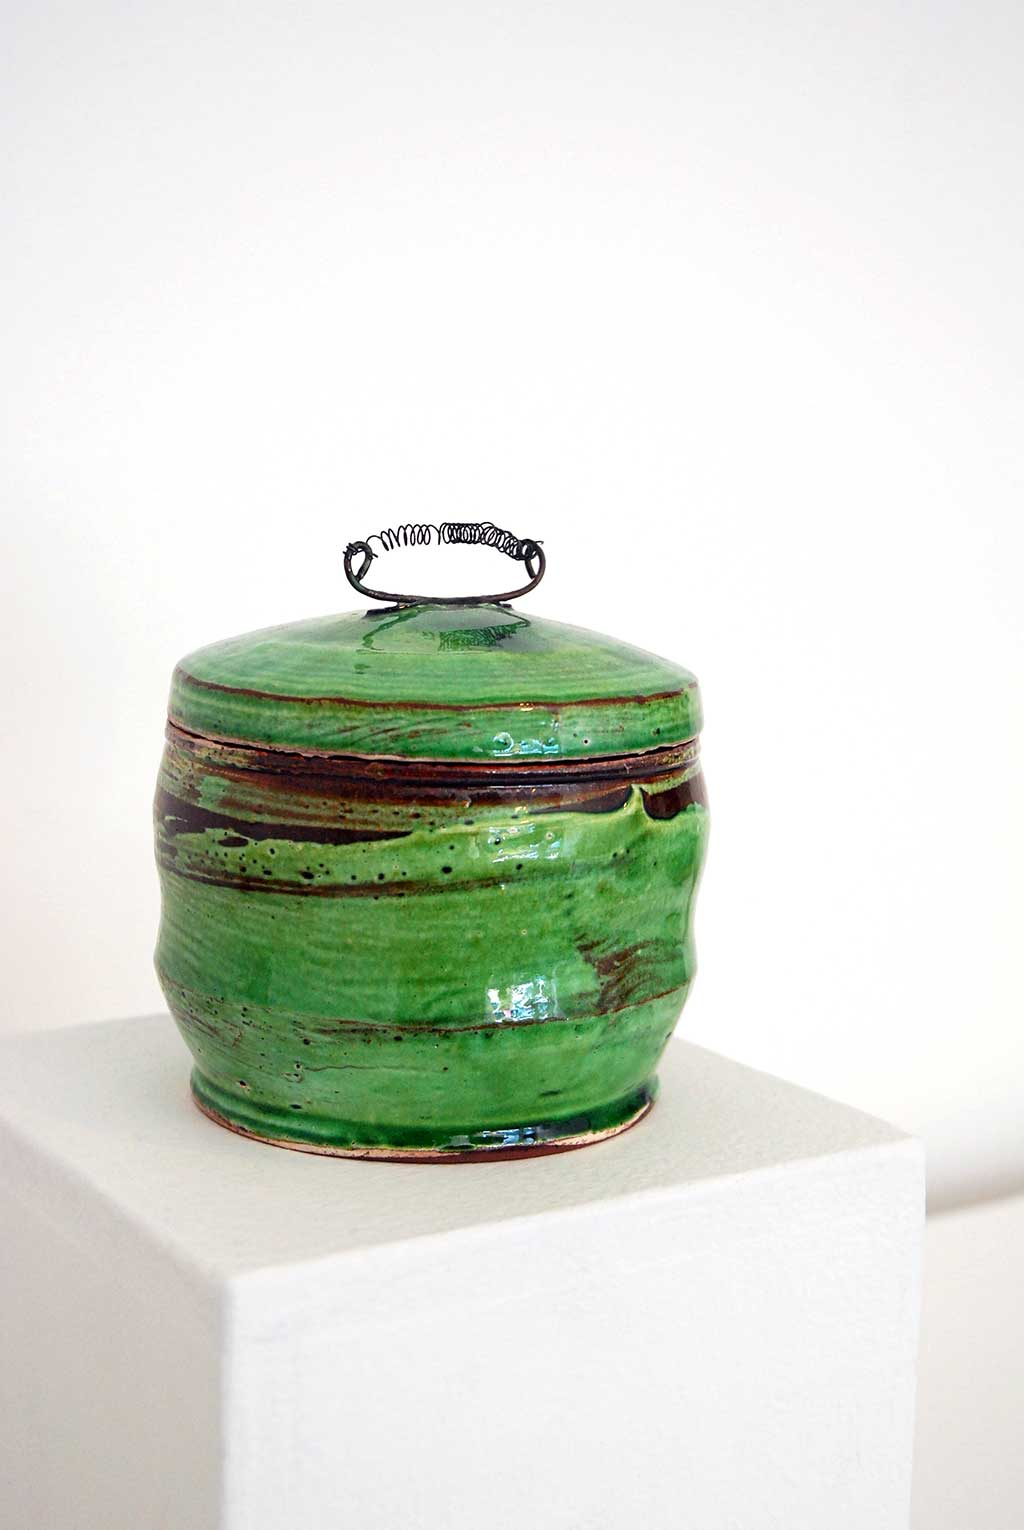 Sandy Simon, Bull Jar, 2014. Red earthenware, porcelain slip, glaze, nichrome wire, thrown